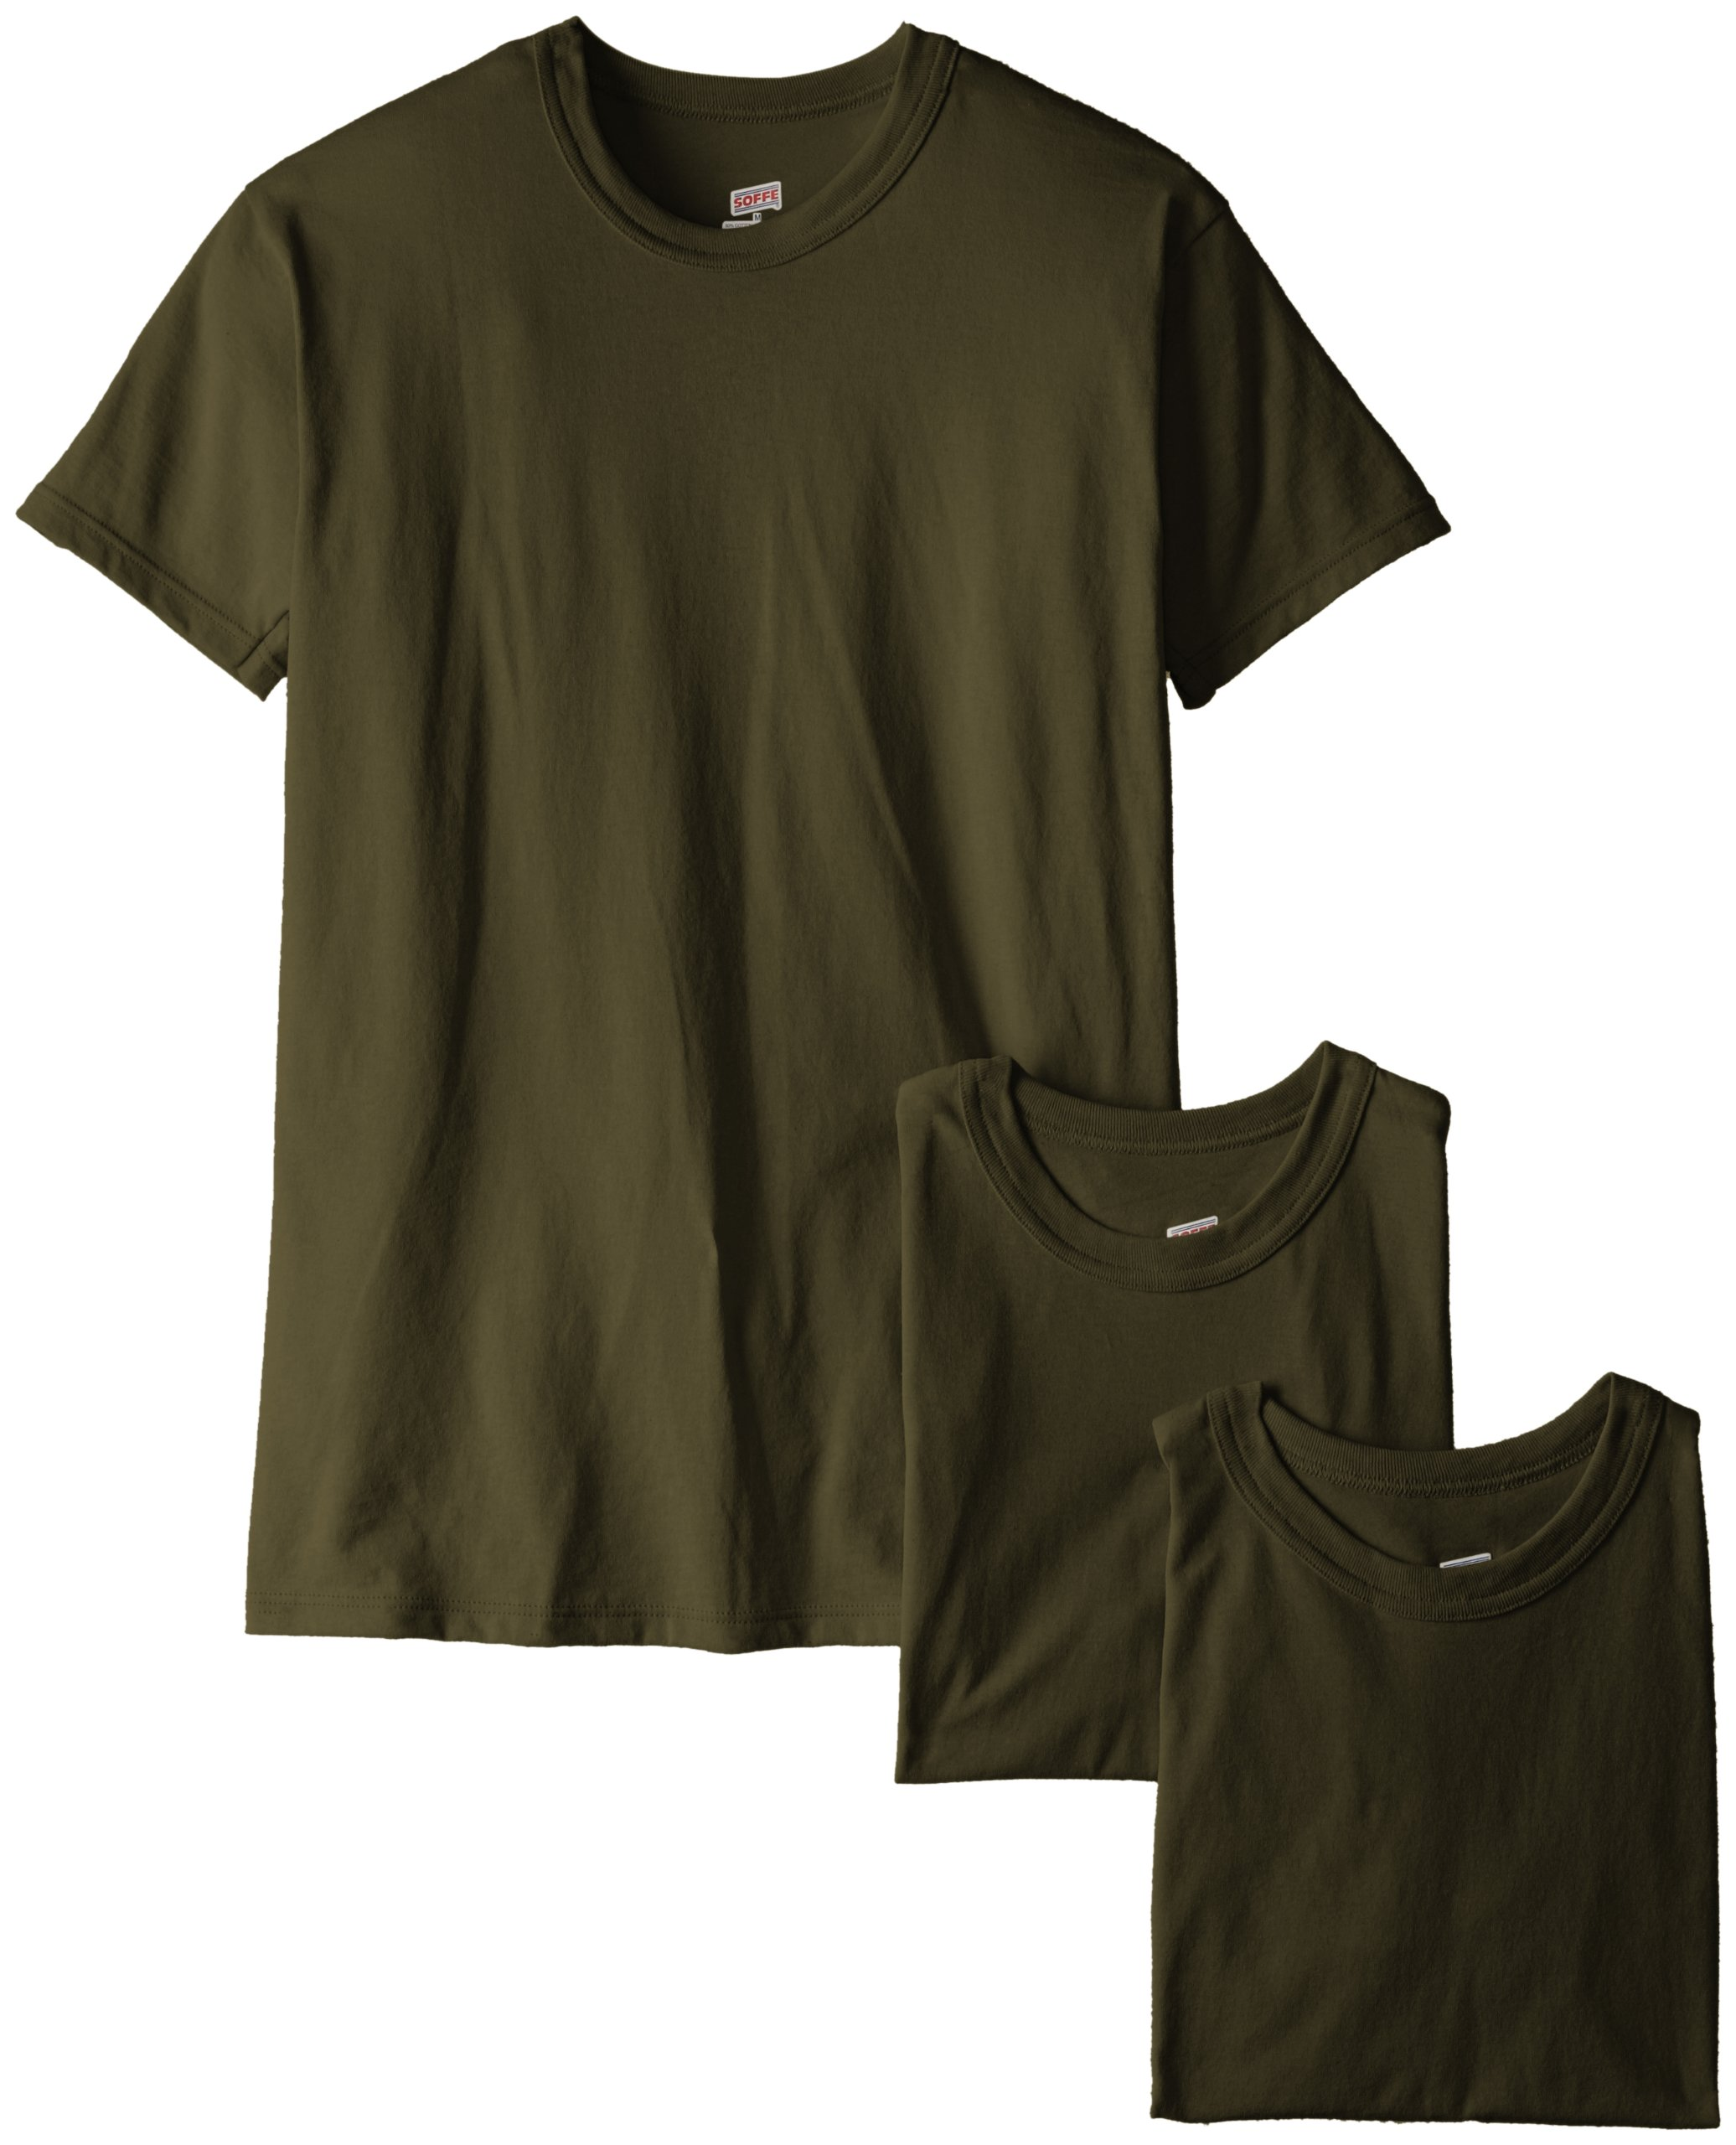 Soffe Men's 3-Pack Short Sleeve Crew Neck Military T-Shirt, Olive Green, Small